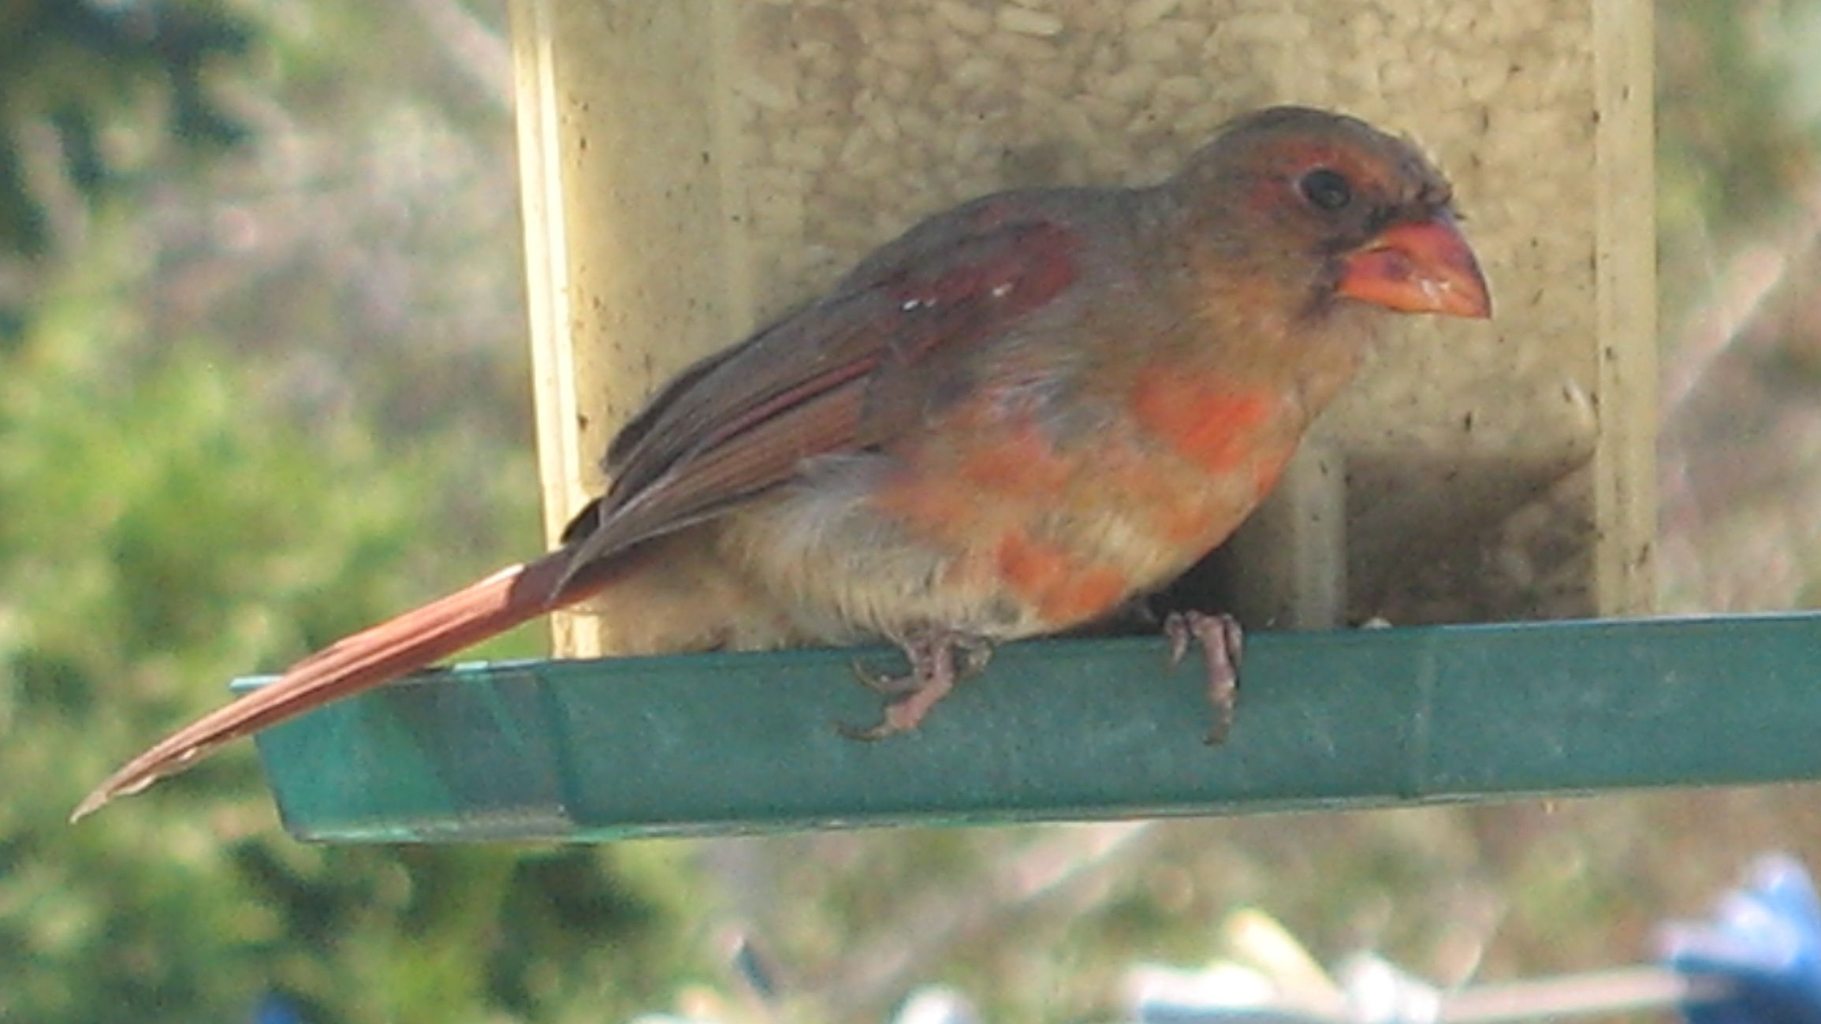 Northern Cardinal - Young male by avator